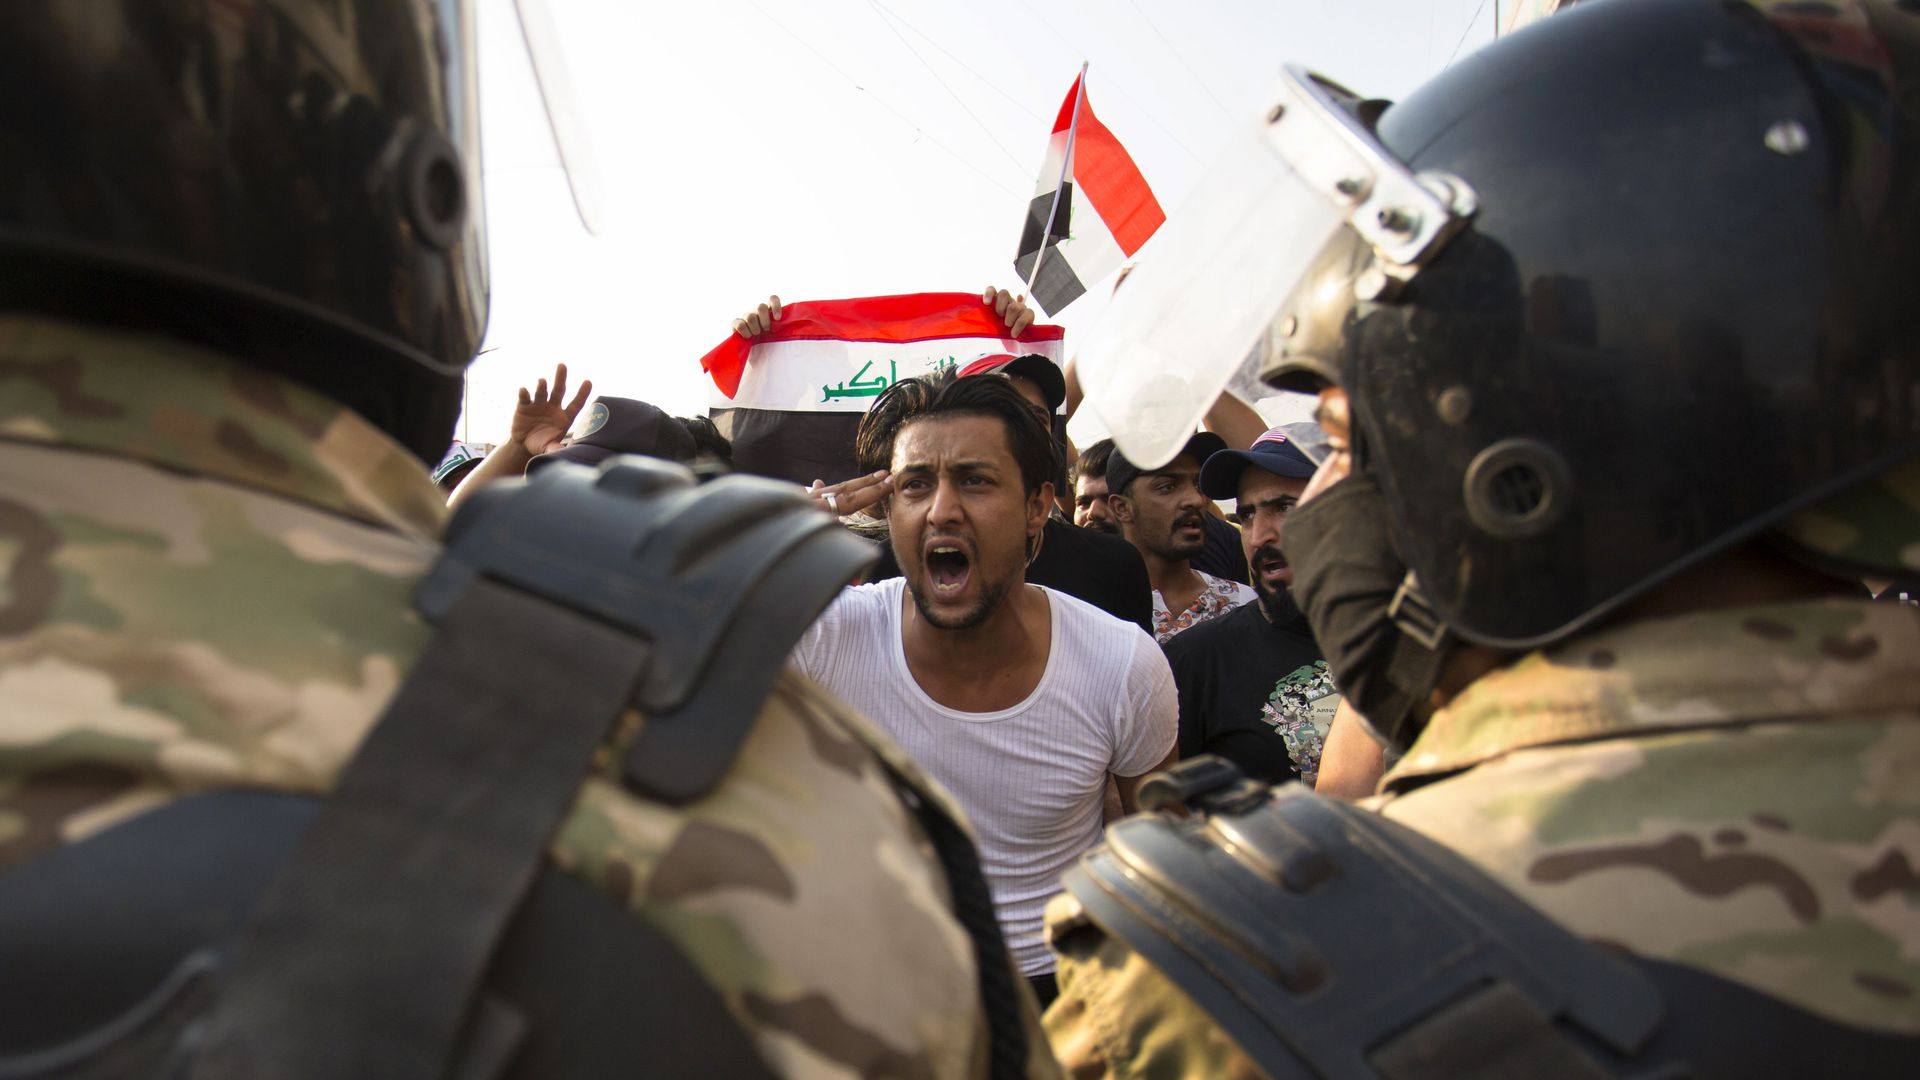 Iraqi protester gestures in front of armed forces